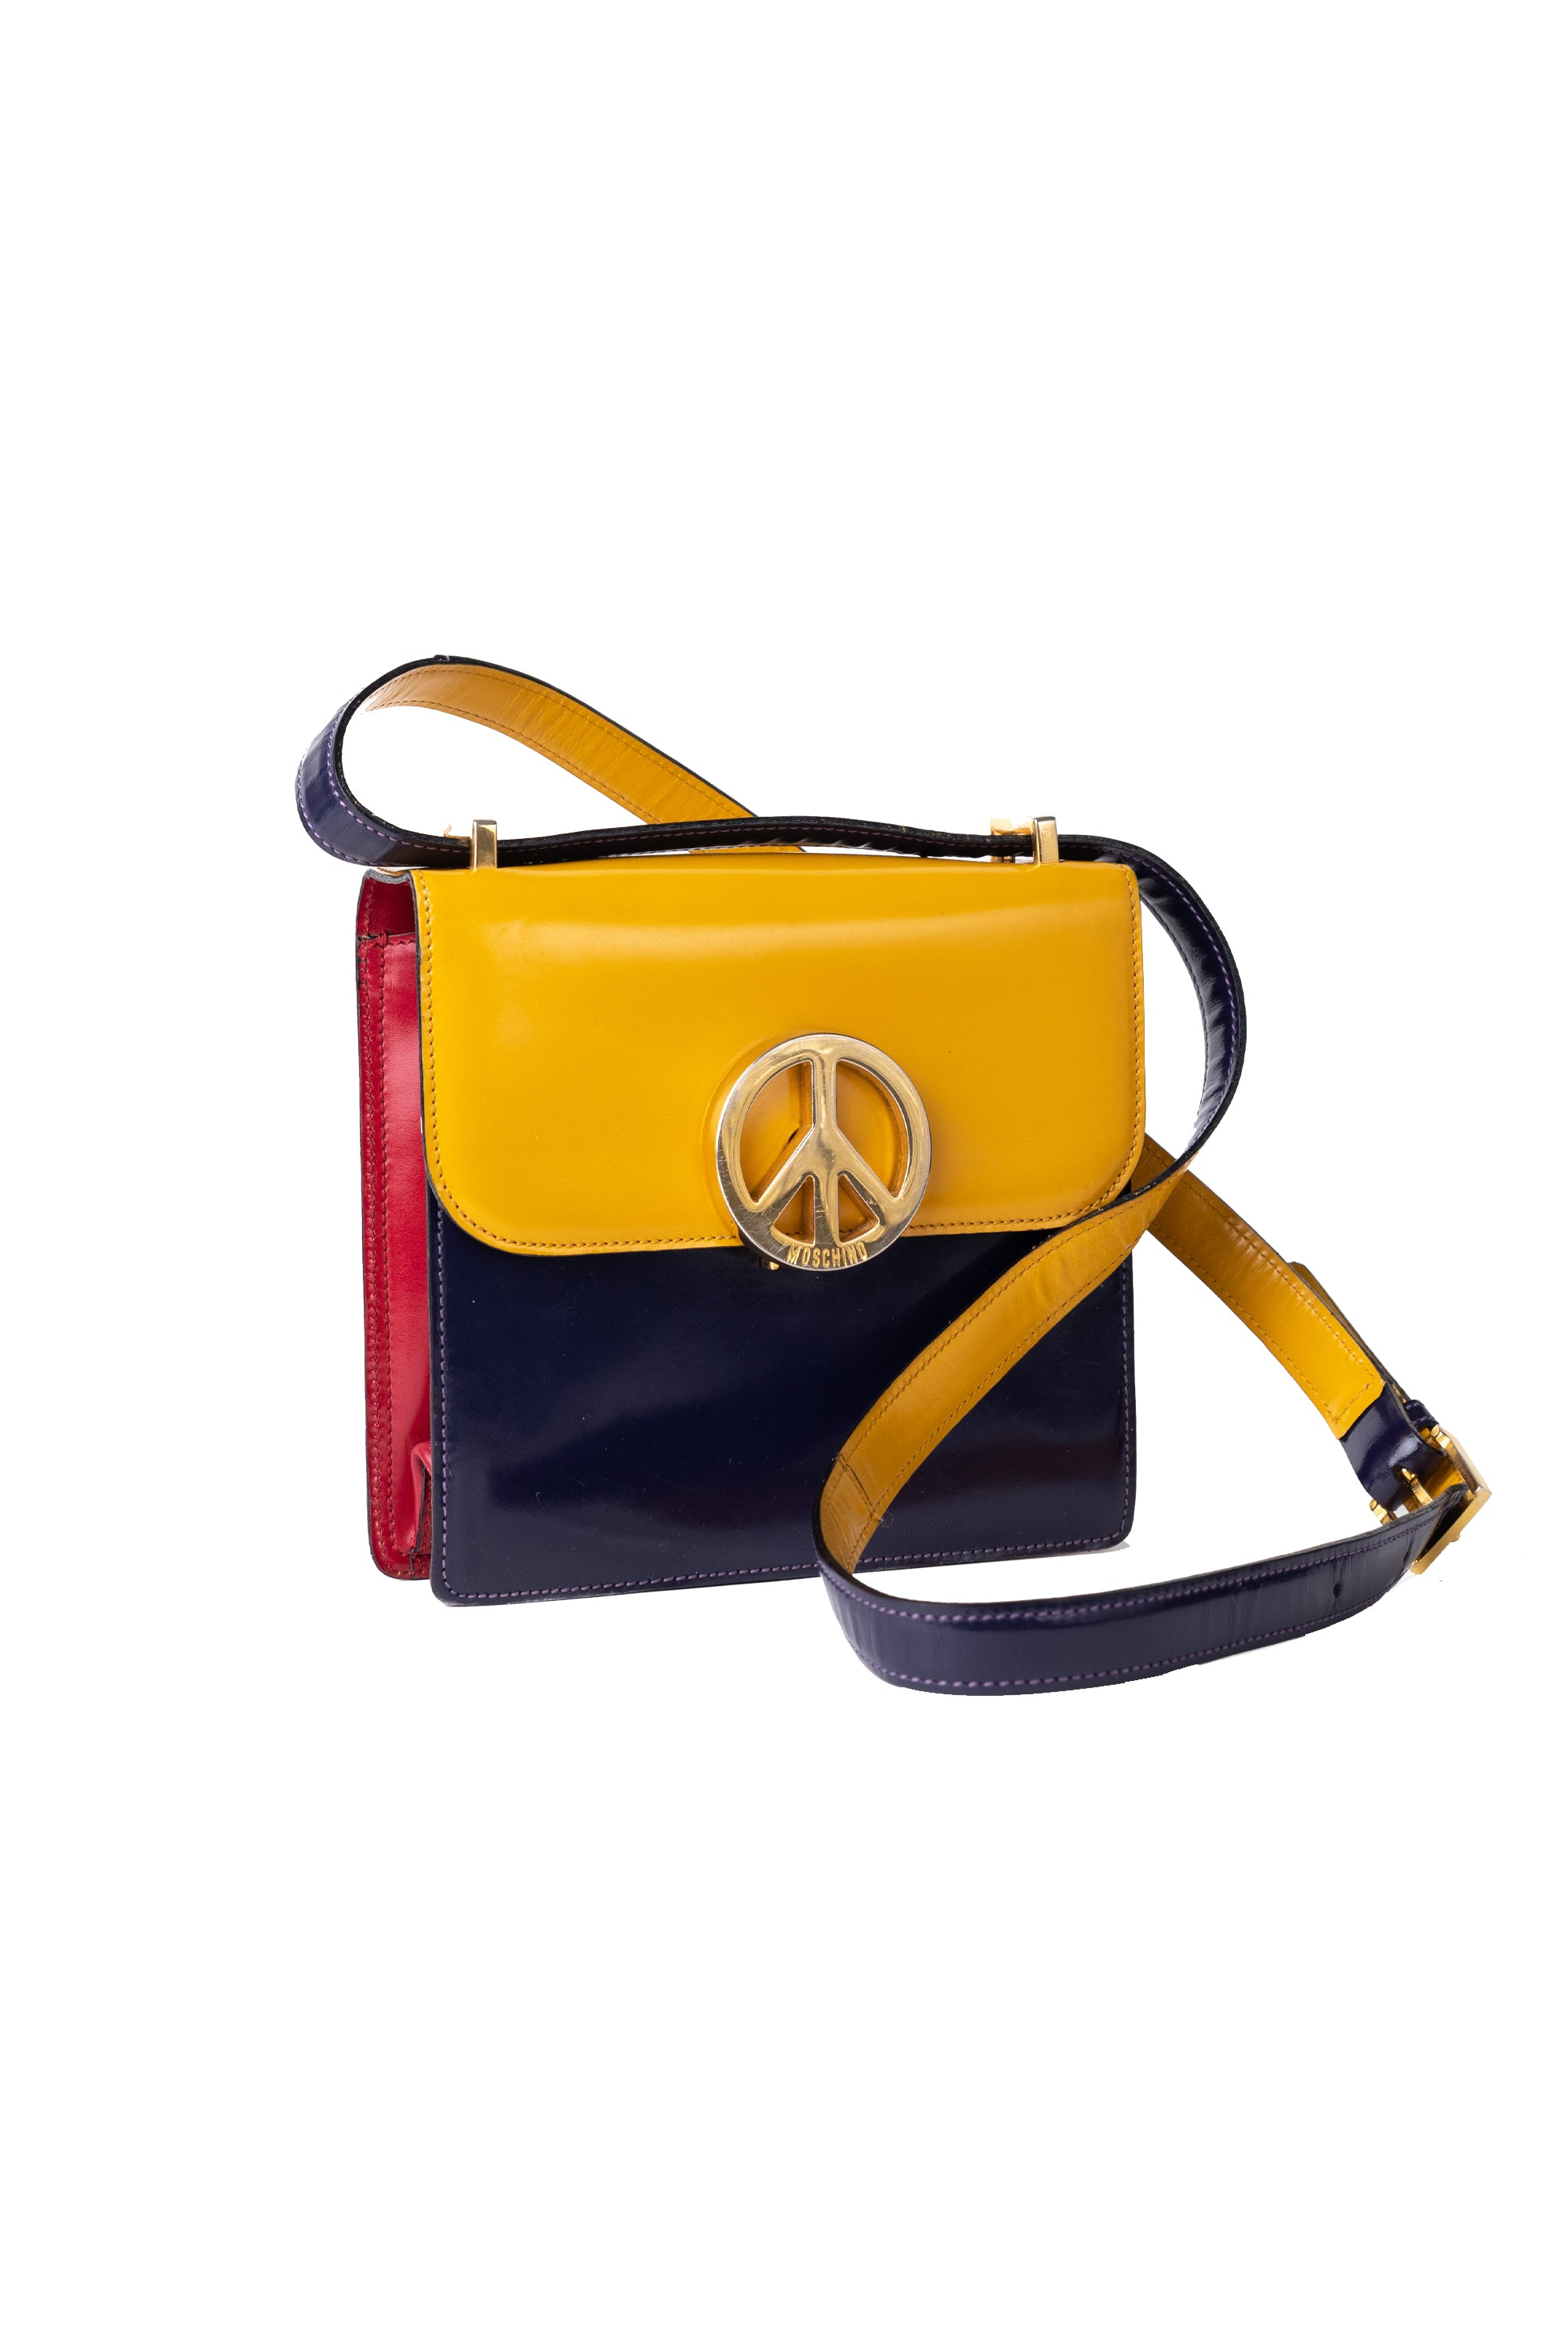 Moschino <br> 90's Moschino by Redwall triple tone Peace sign handbag